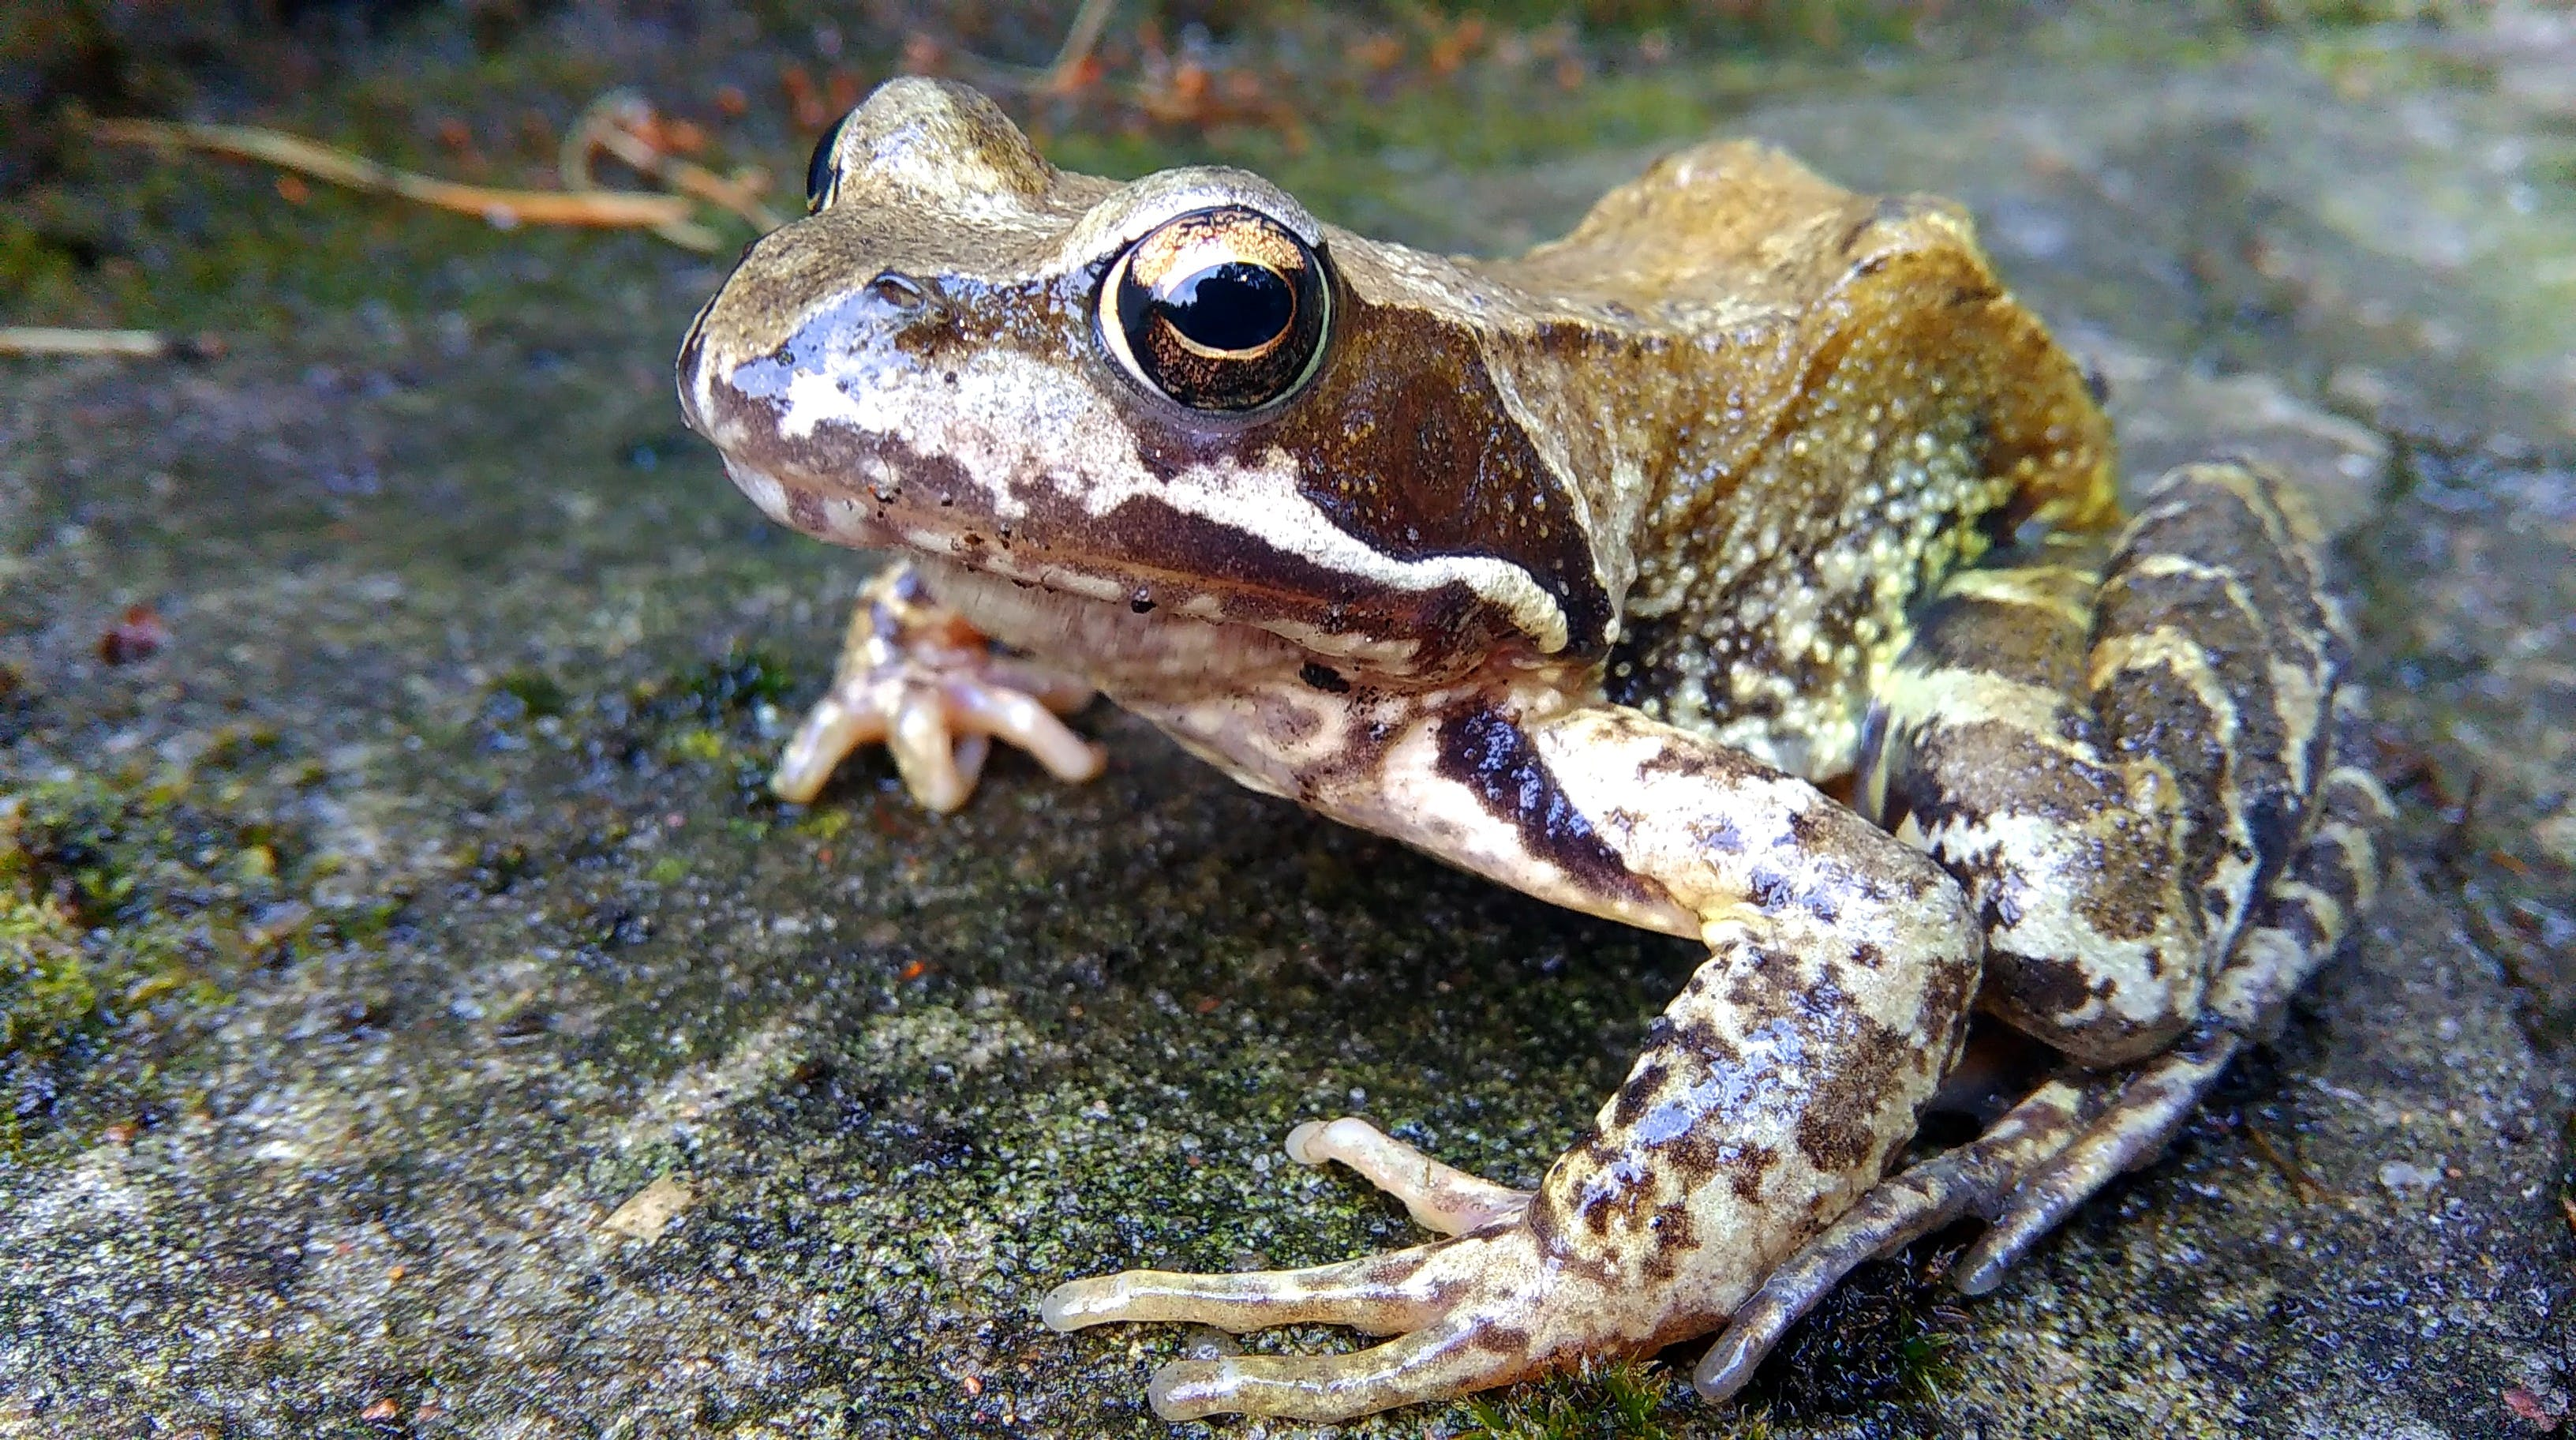 Brown and White Frog in Concrete Pavement